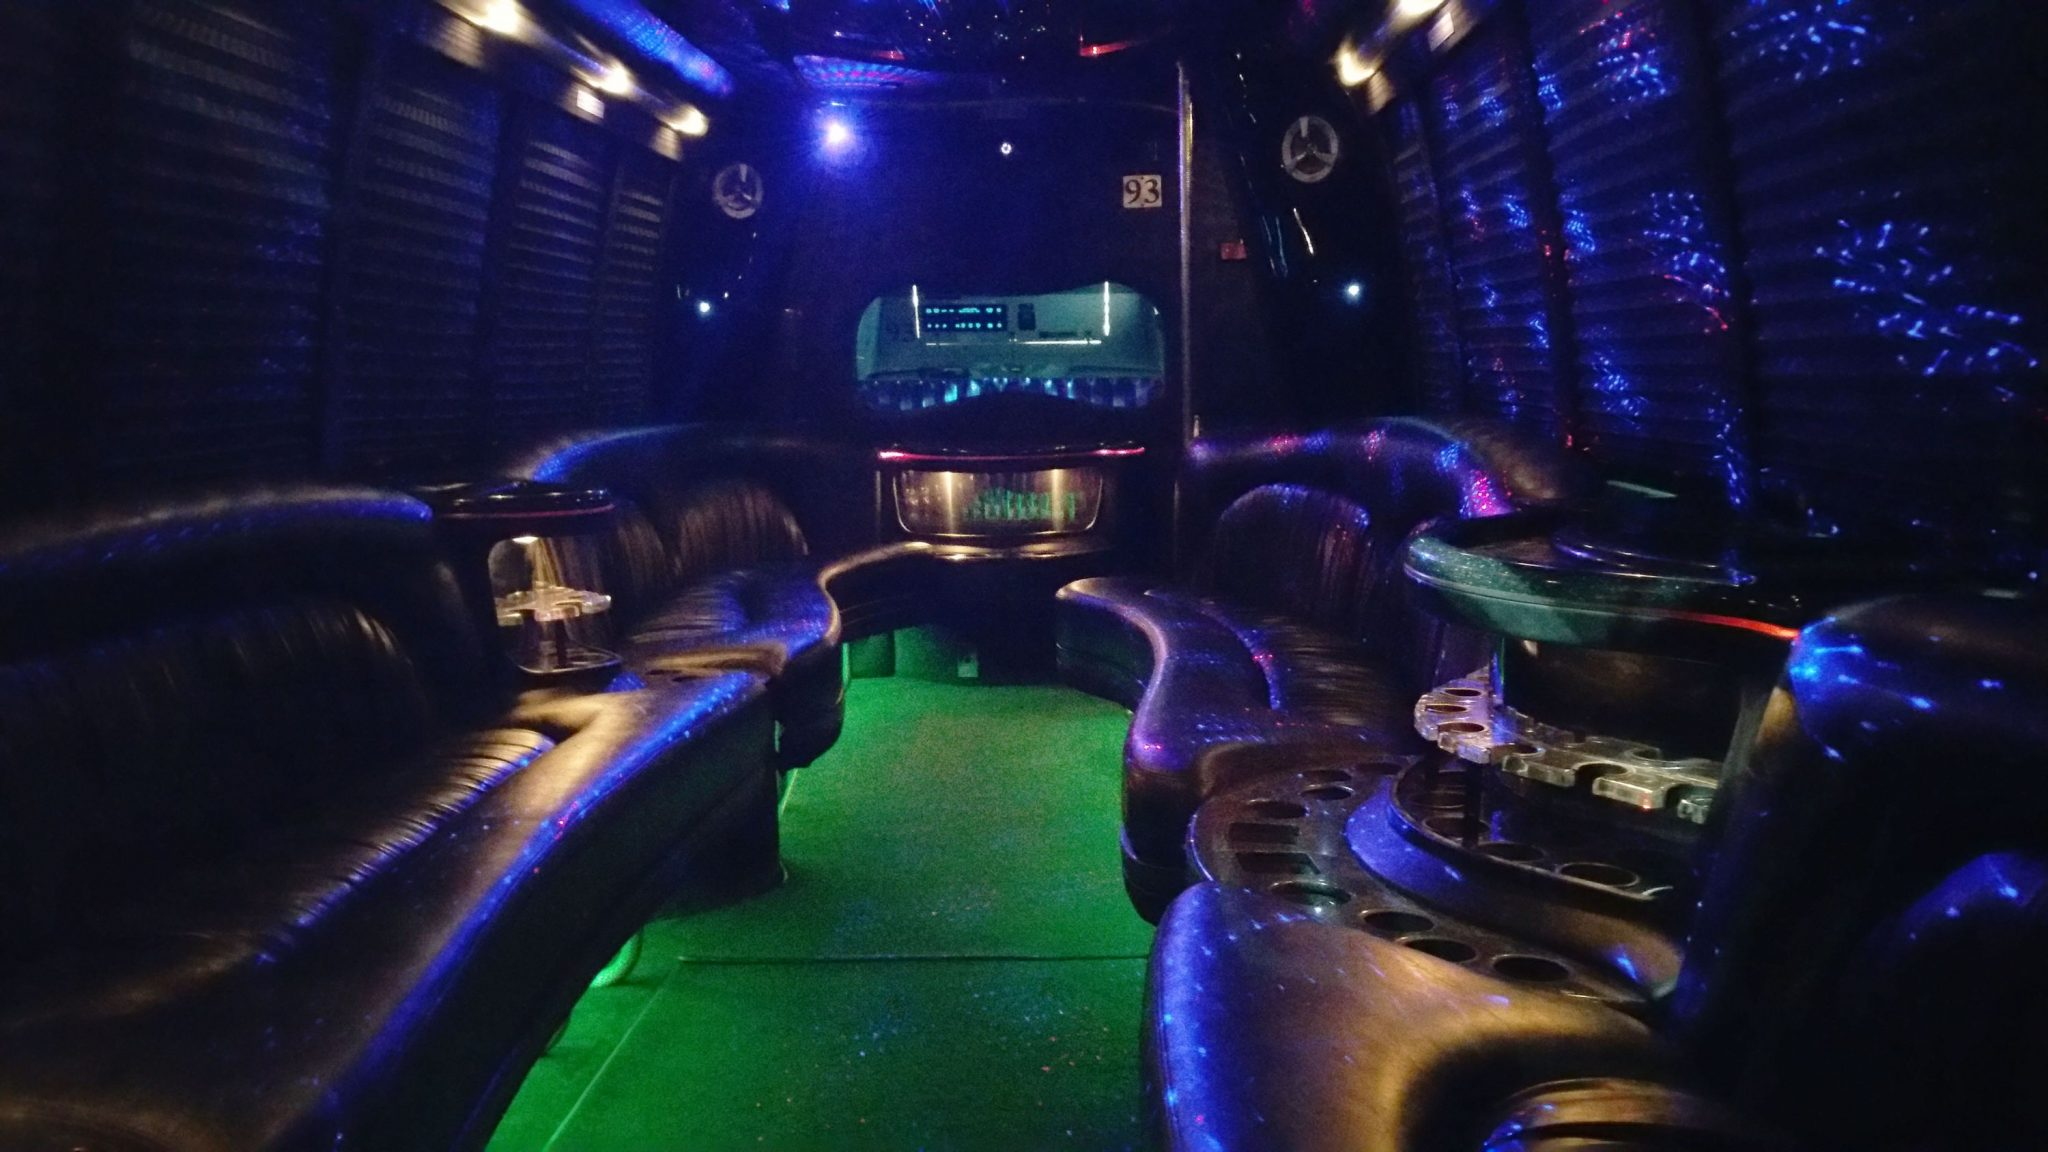 Party Bus Chicago, Limo Bus Chicago, Shuttle Bus, Mini Coach, Executive Coach, Sprinter Van, Party Bus Chicago IL, Corporate Bus Chicago, Hire Car Service, LED Lights Limo, Party Bus to Downtown Chicago, Party Bus O'Hare, Limo to Downtown Chicago, Night on the Town, Bachelor Party, Bachelorette, Wedding, Birthday, Book, Hire, Rent, Want, Need, Get, Order, Rental, Limousine, Limo Service Chicago